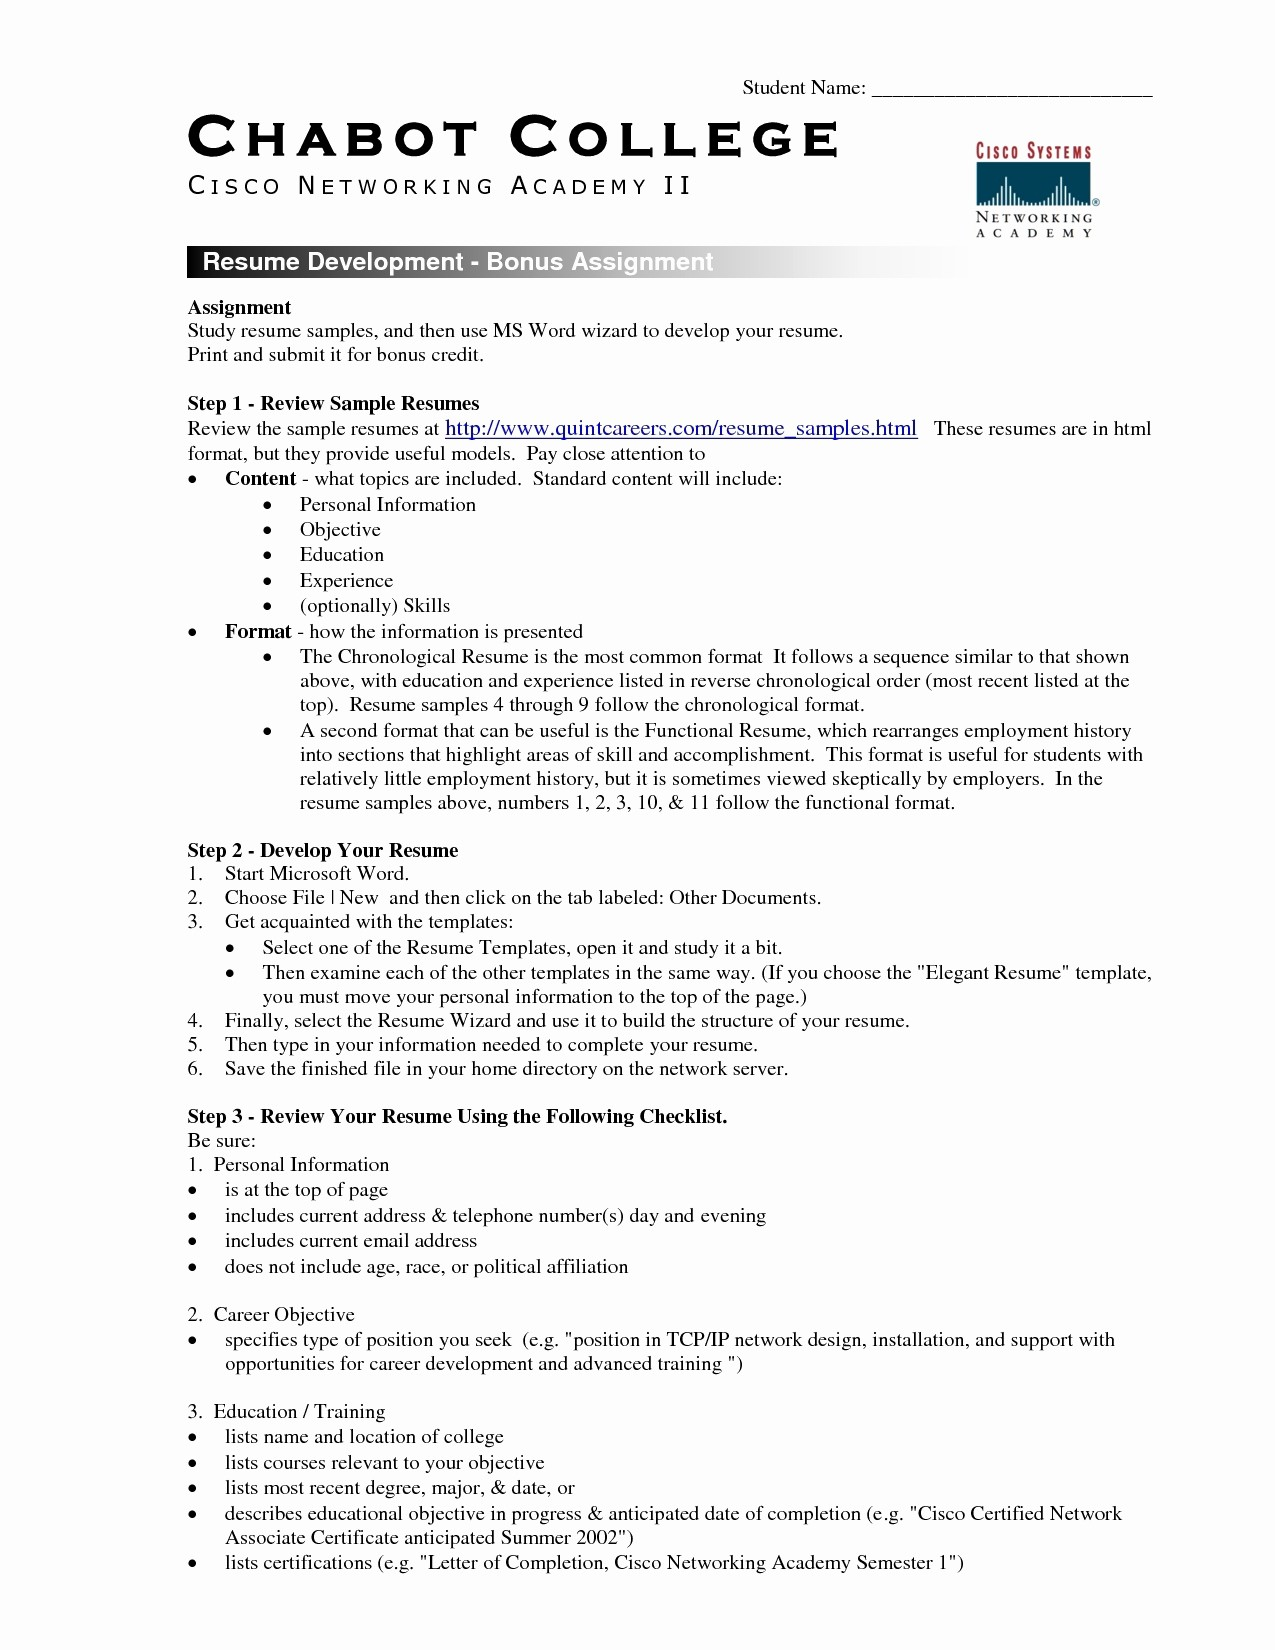 Ms Office Word Resume Templates Inspirational Resume Template Microsoft Word 2017